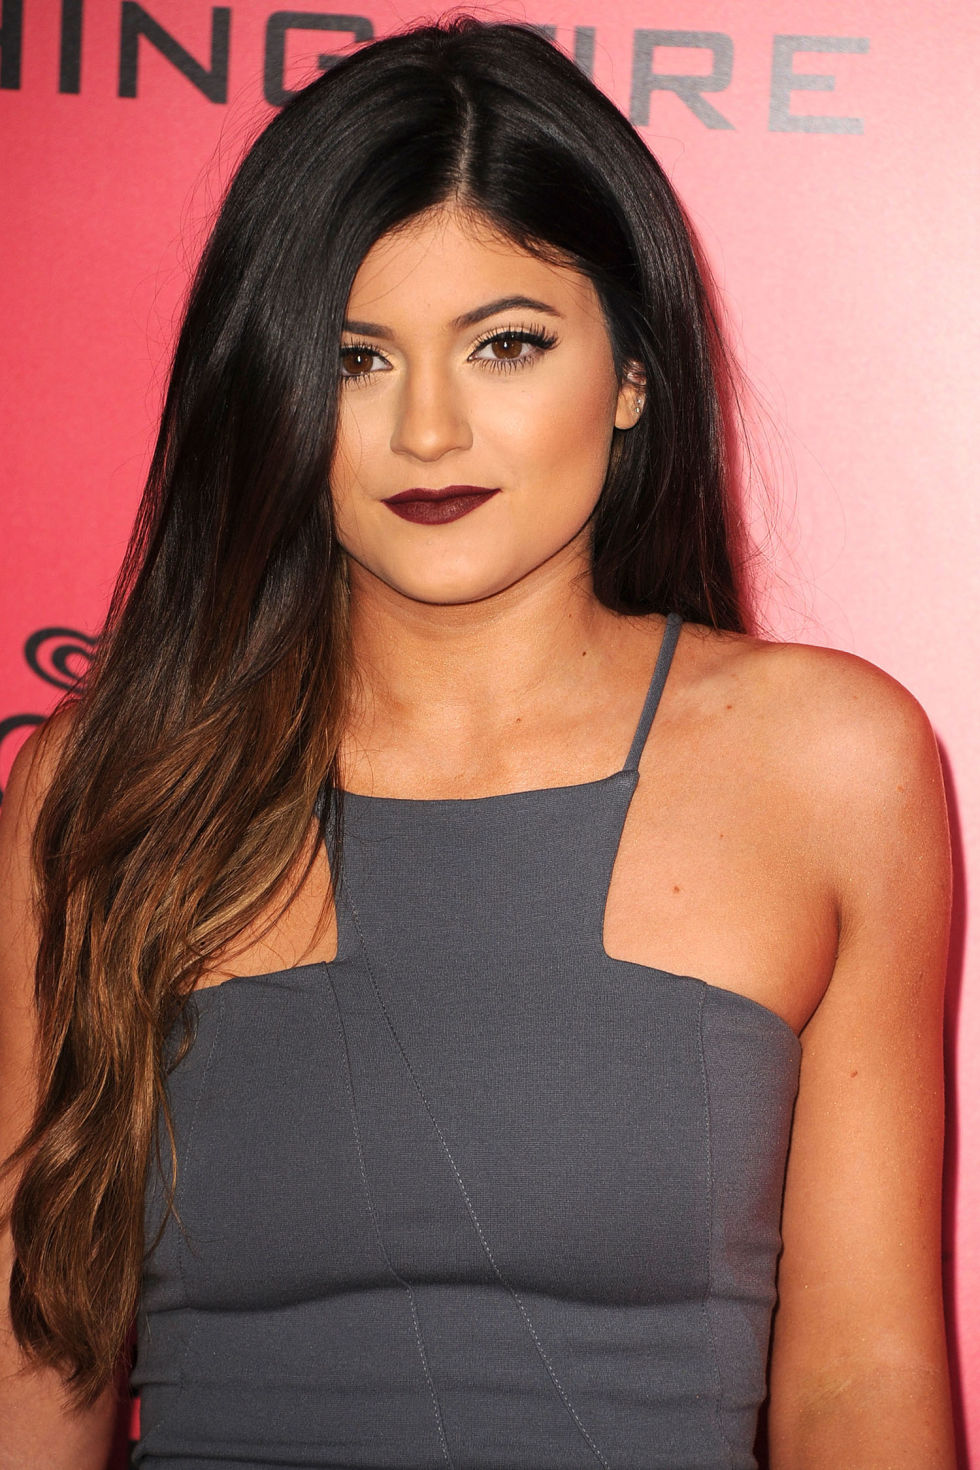 Kylie Jenner Hot Pics, Near Nude & Naked Images